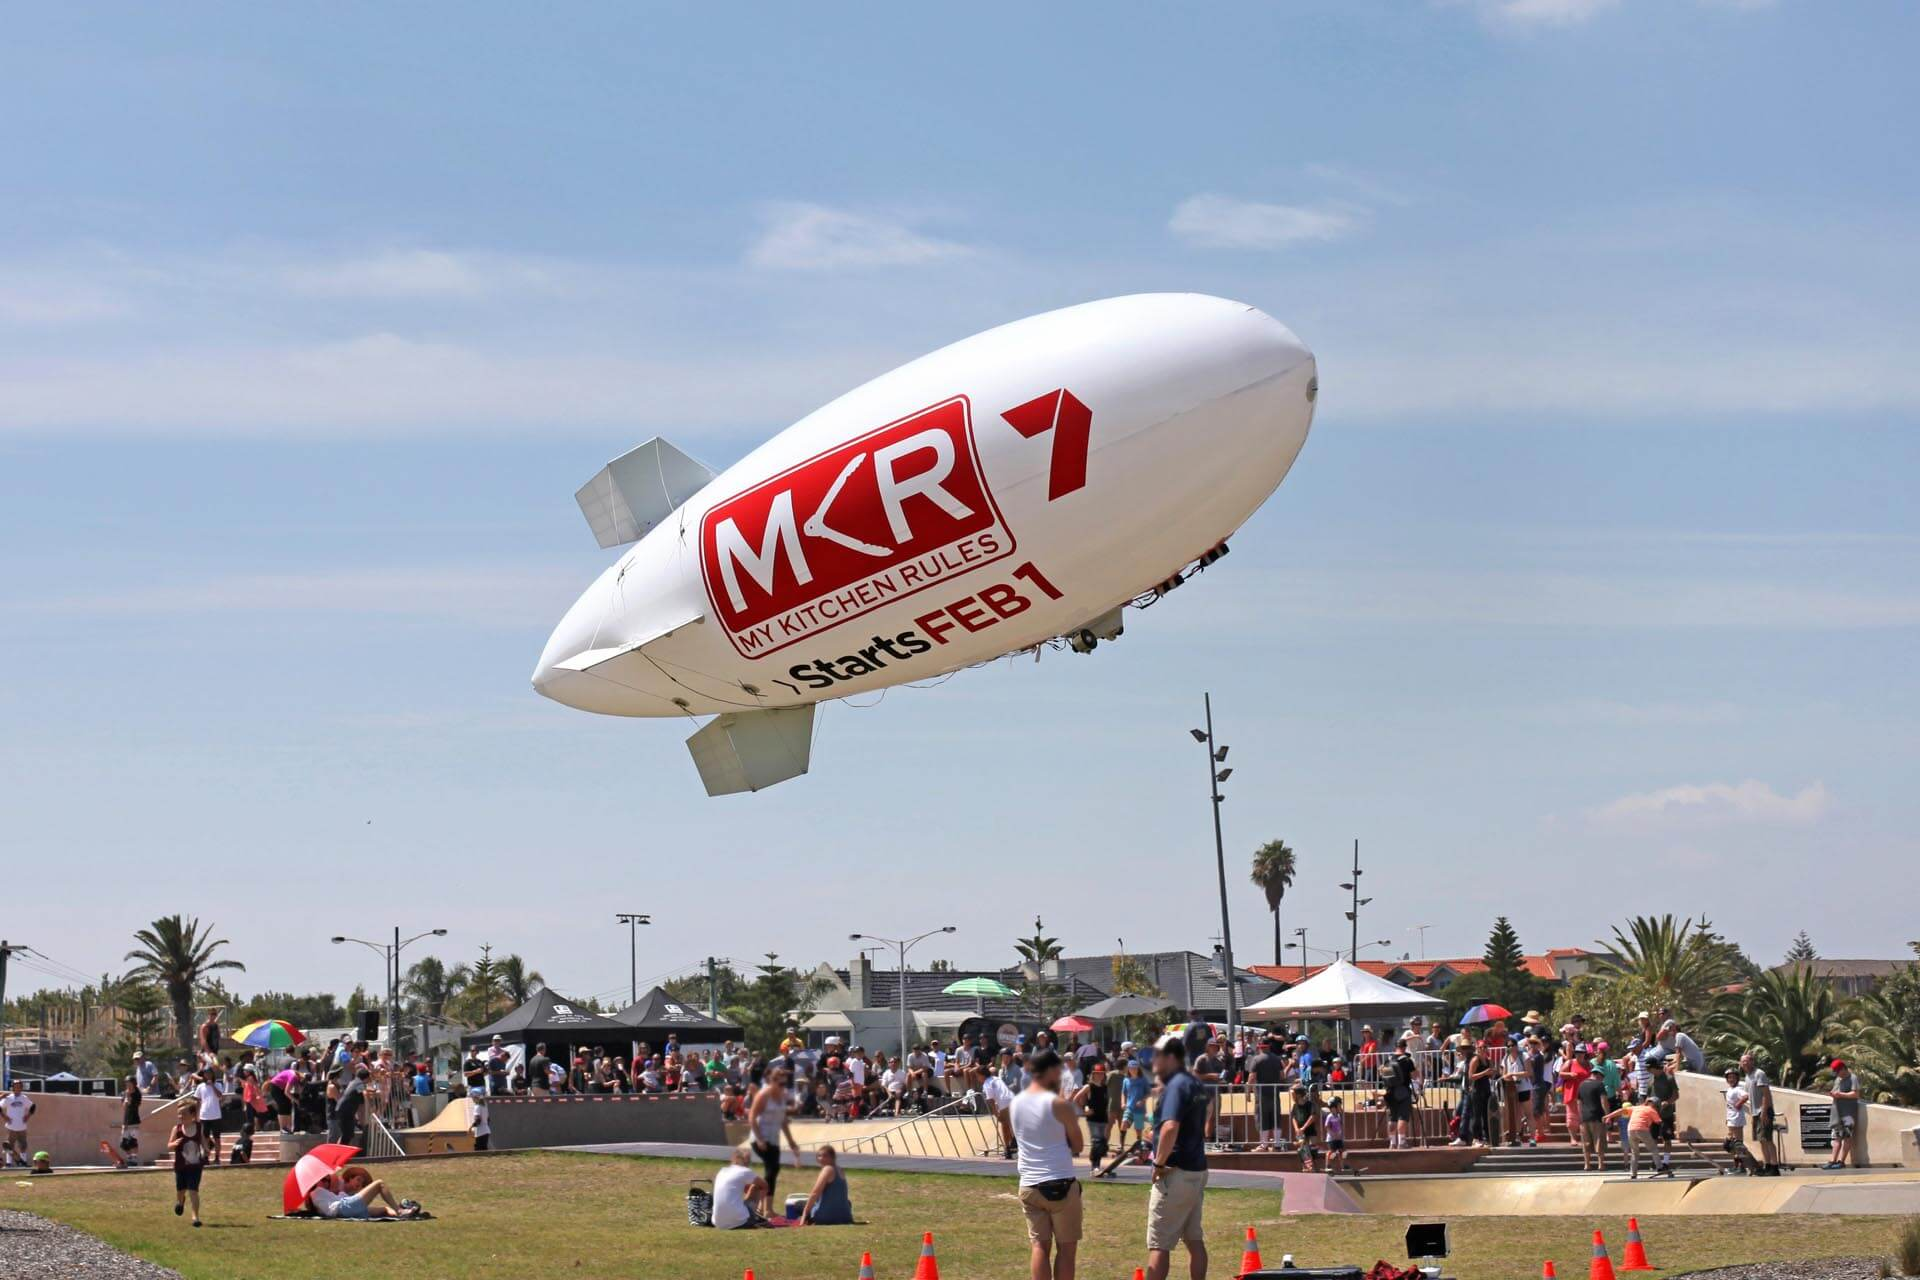 my kitchen rules blimp